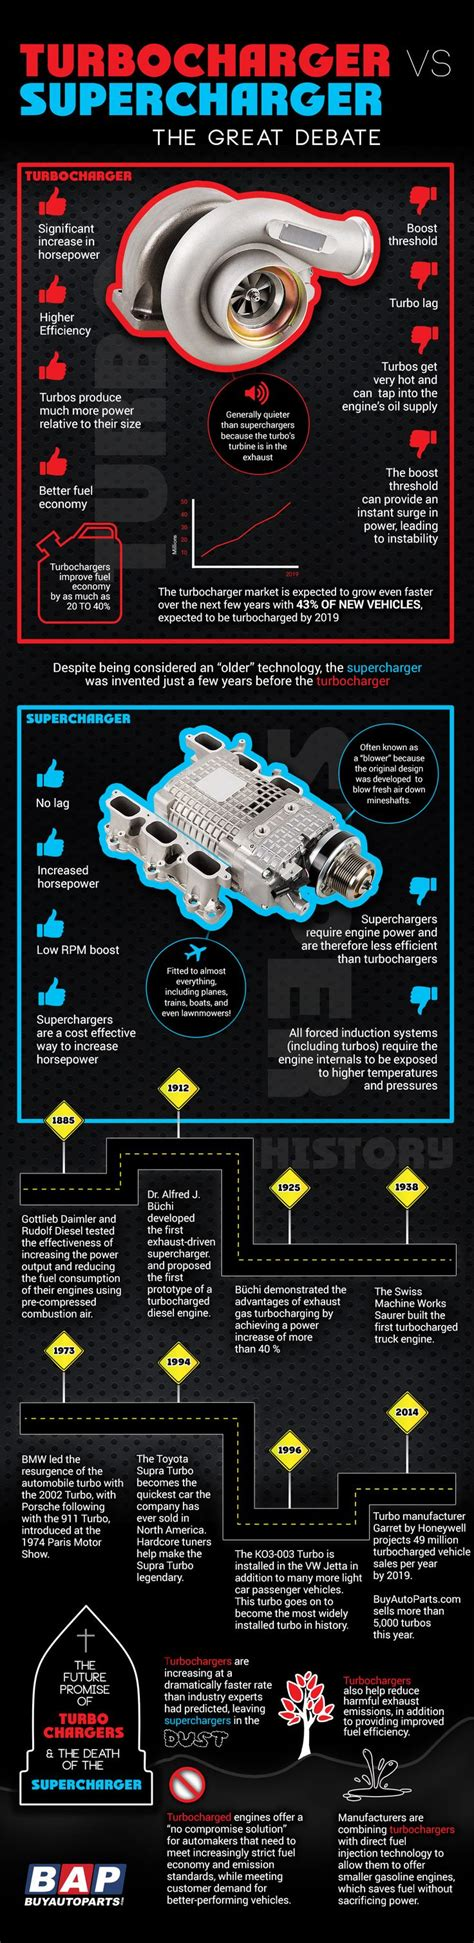 turbochargers  superchargers buyautopartscom predicts